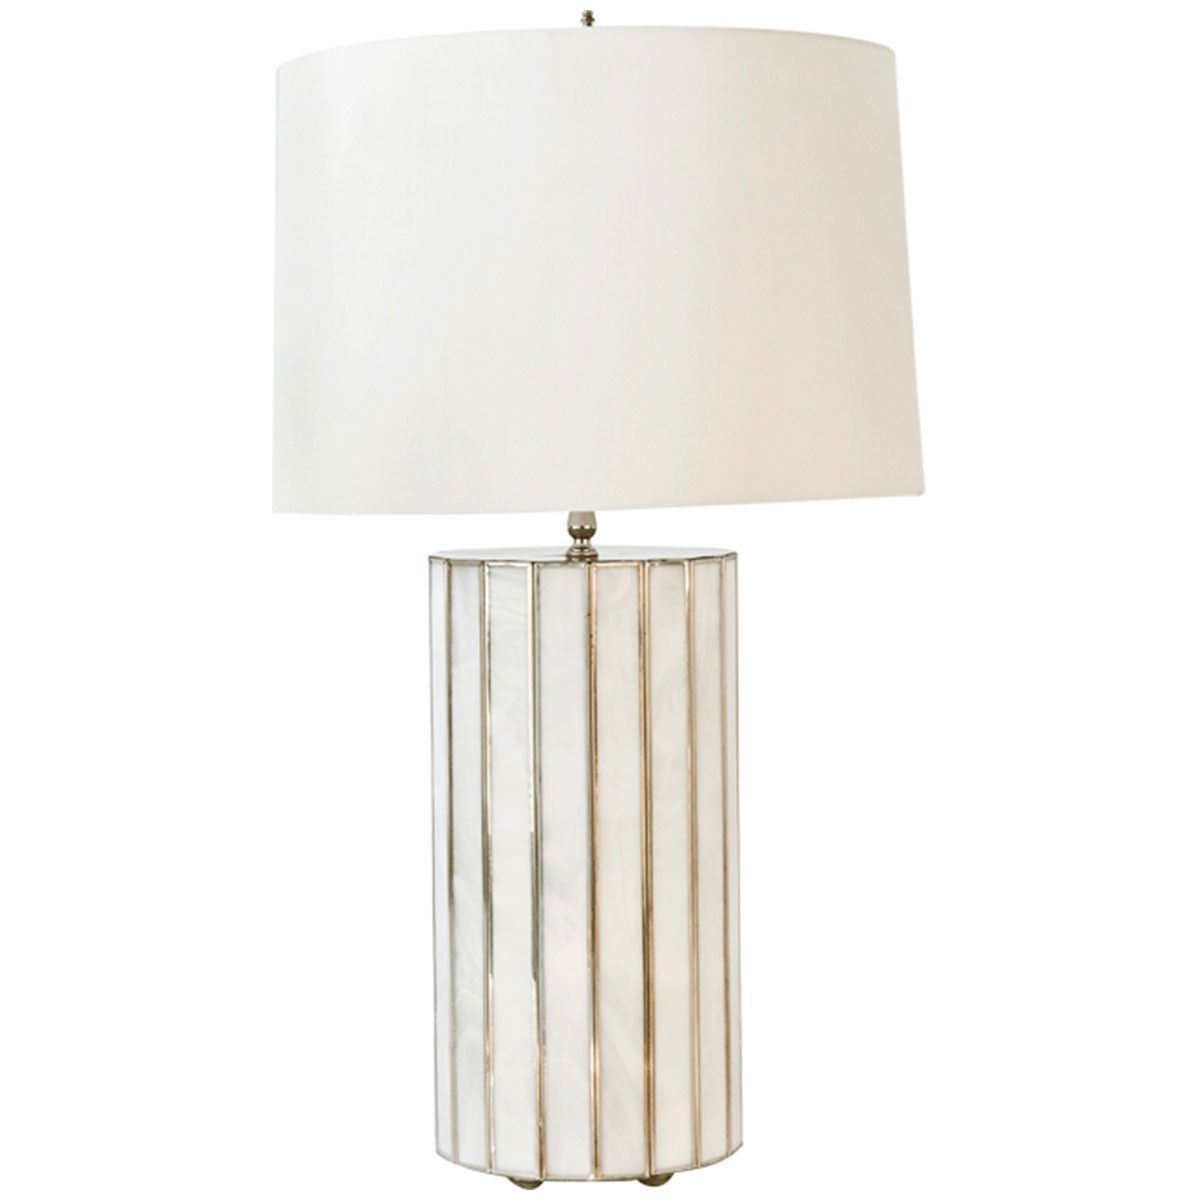 Worlds Away Large Faceted White Glass Lamp GORDO WH